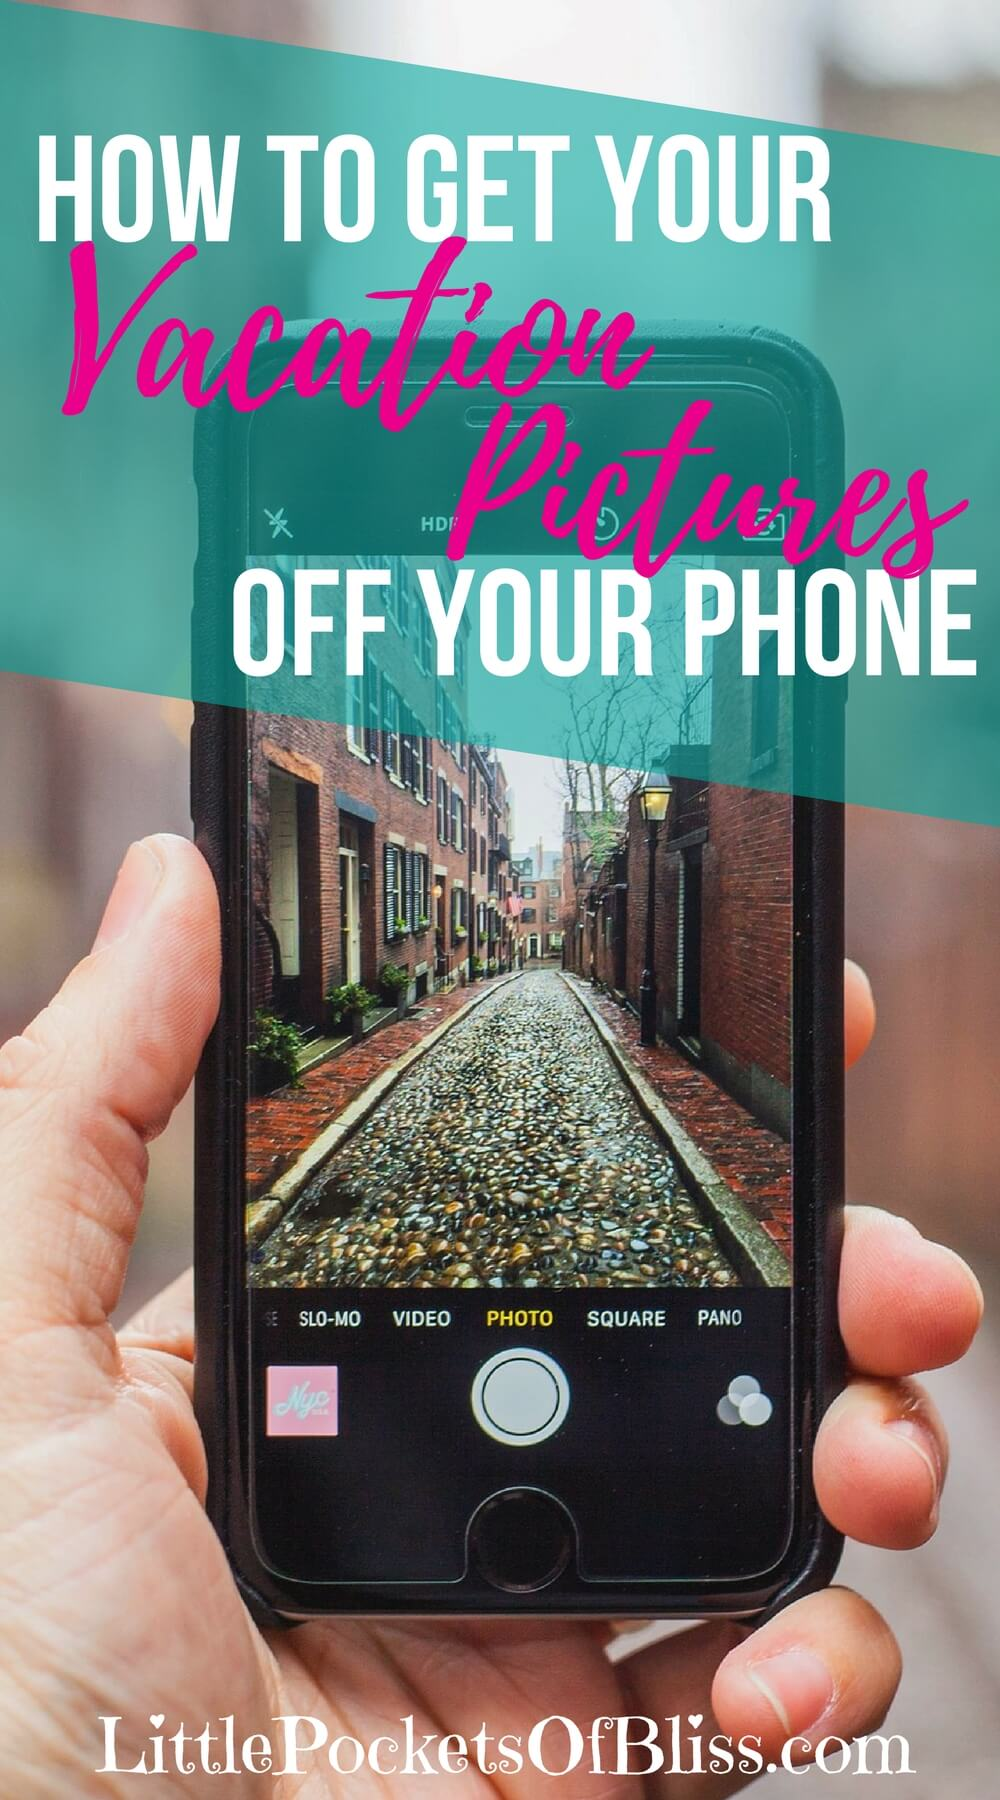 Where are your vacation photo albums? Wait...still have all the pictures on your phone? Here's a step by step process for getting your vacation pictures off your phone so everyone can enjoy them! #vacationphotos #trippictures #vacationmemories